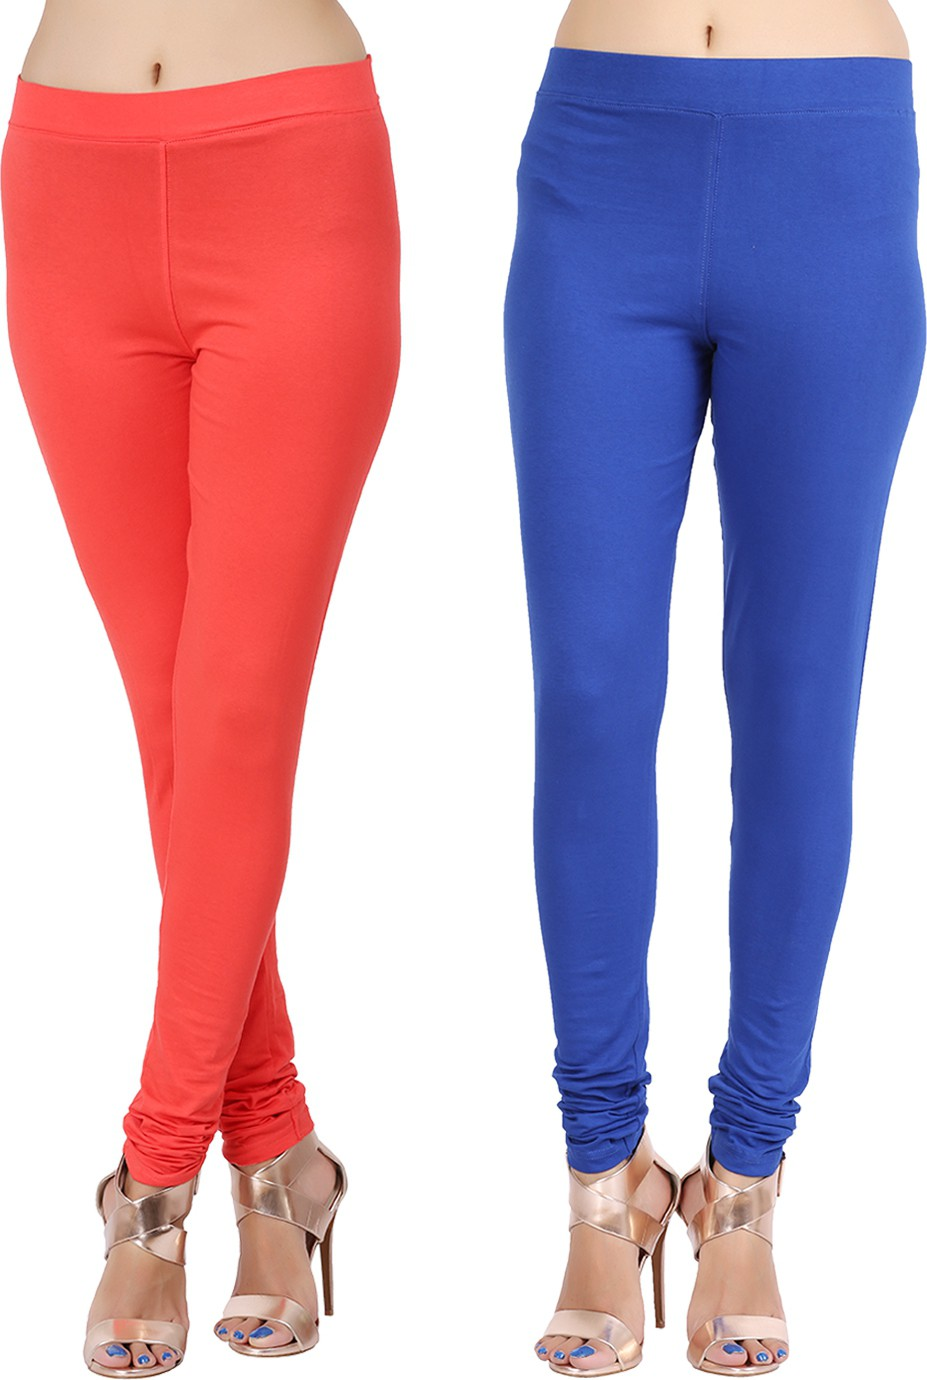 Lula Ms Womens Red, Dark Blue Leggings(Pack of 2)